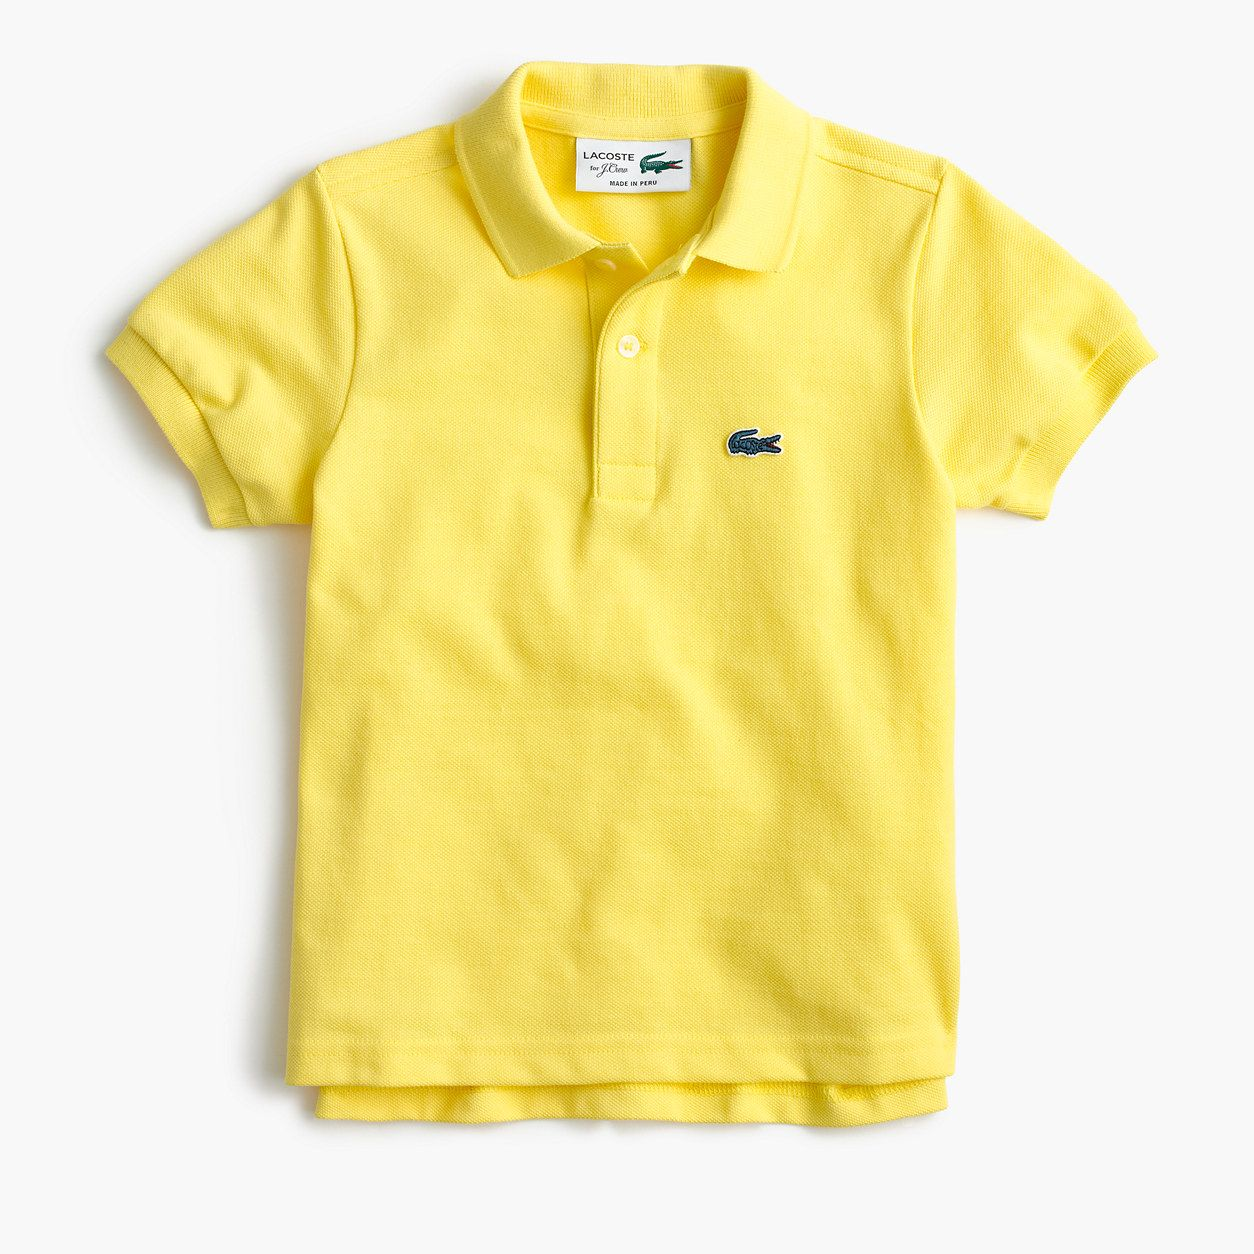 787cdae6 crewcuts Boys Lacoste For J.Crew Polo Shirt (Size 14 Kid) | Products ...